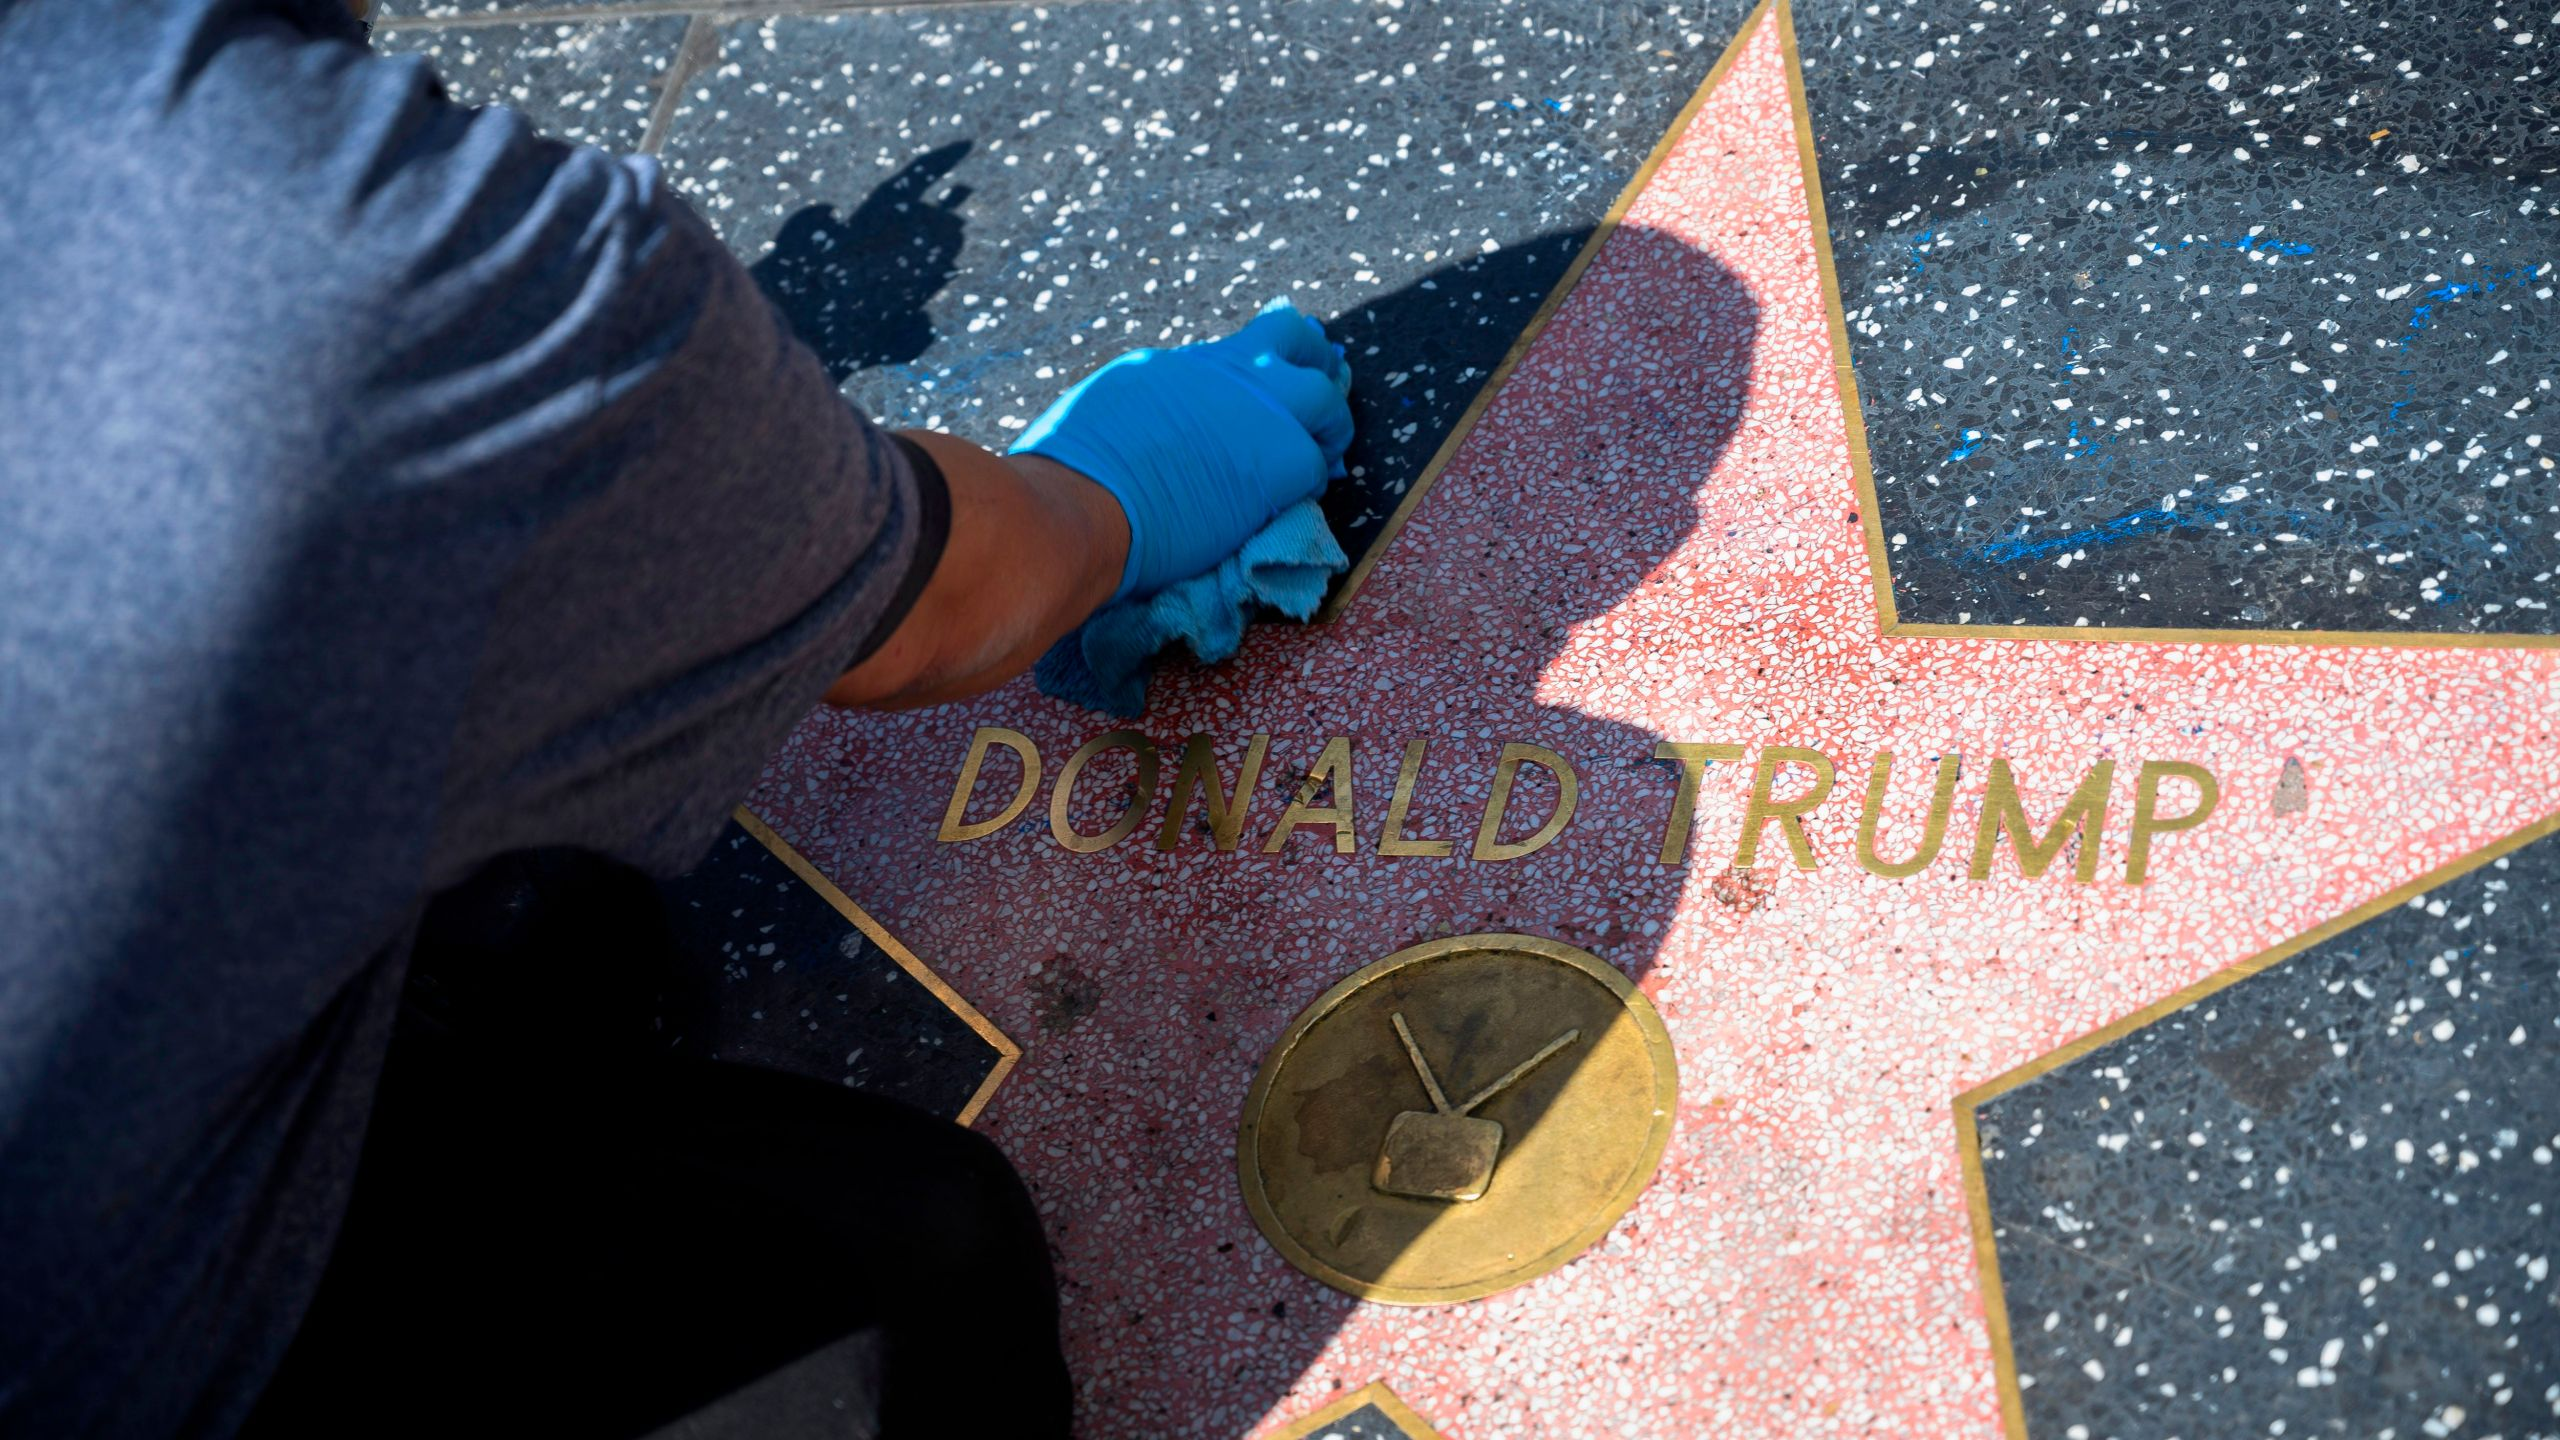 A maintenance worker uses cleaning product to remove graffiti after Donald Trump's star on the Hollywood Walk of Fame was defaced on April 23, 2020 (ROBYN BECK/AFP via Getty Images)